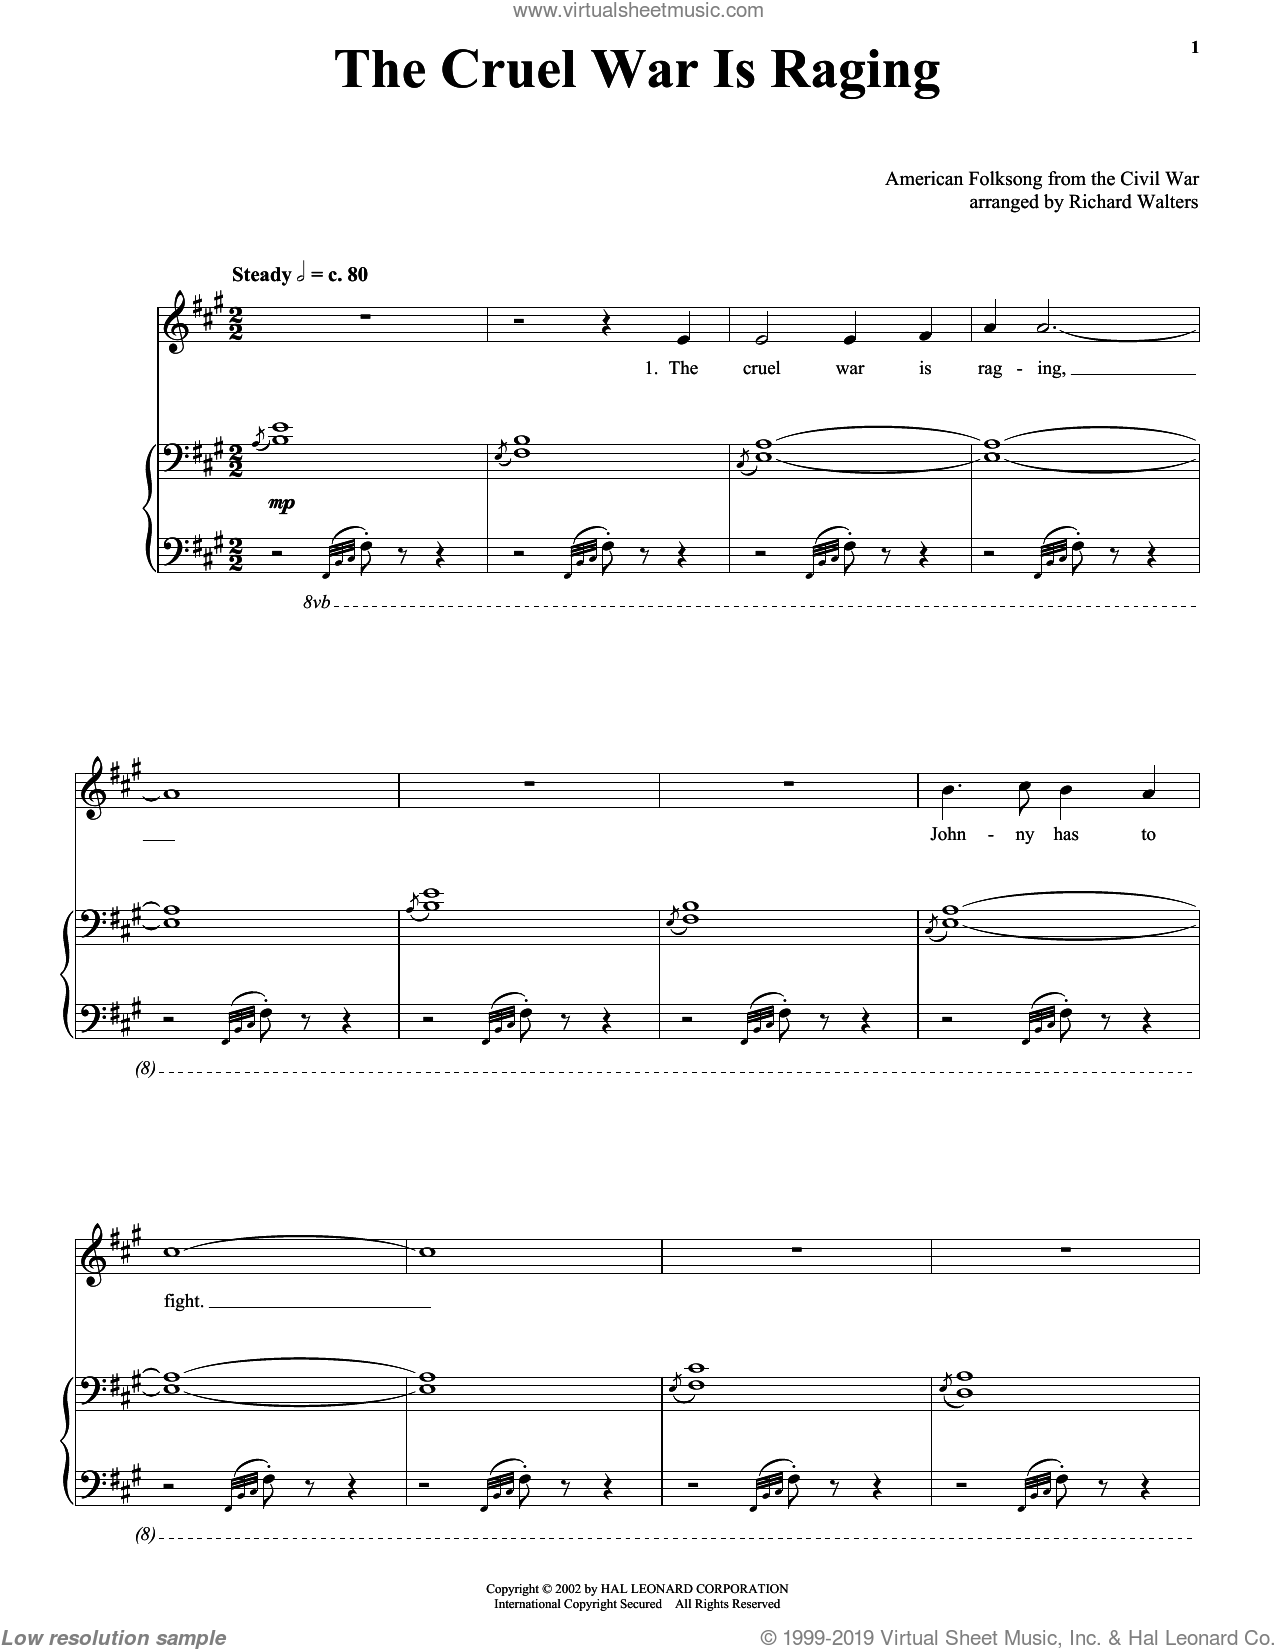 The Cruel War Is Raging sheet music for voice, piano or guitar